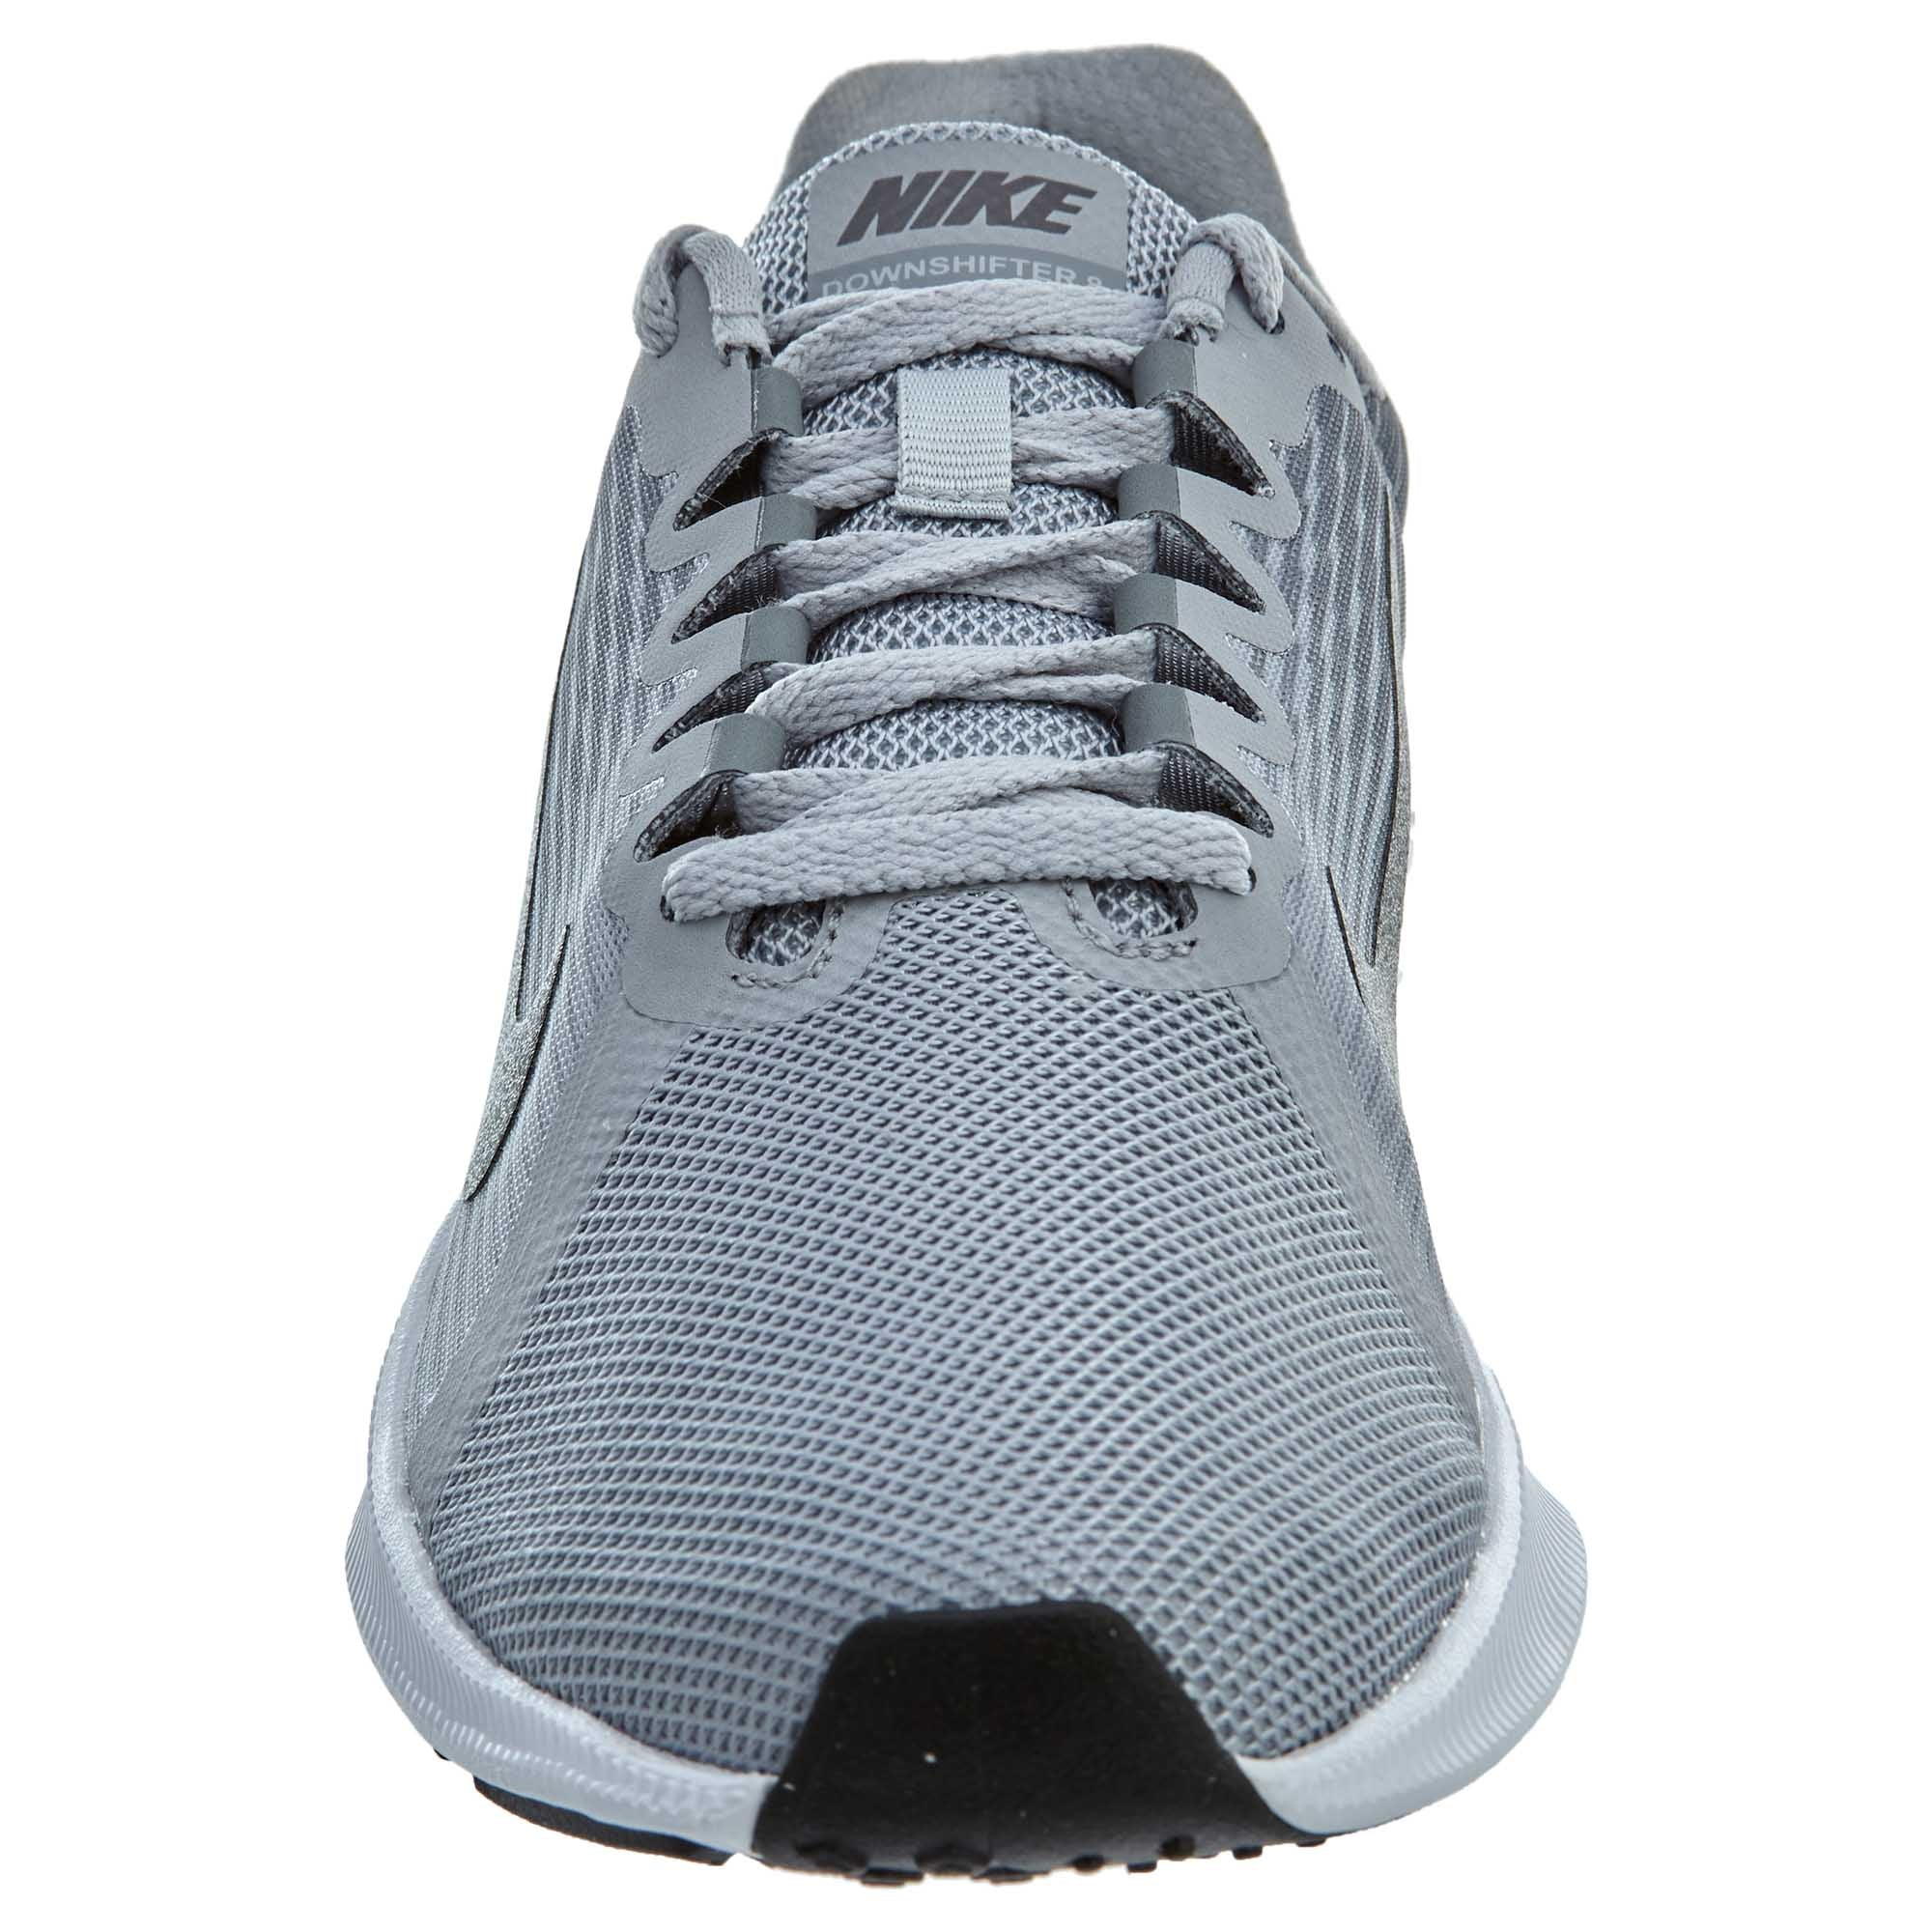 Nike Downshifter 8 Womens Style   908994-006 8ab99ce17